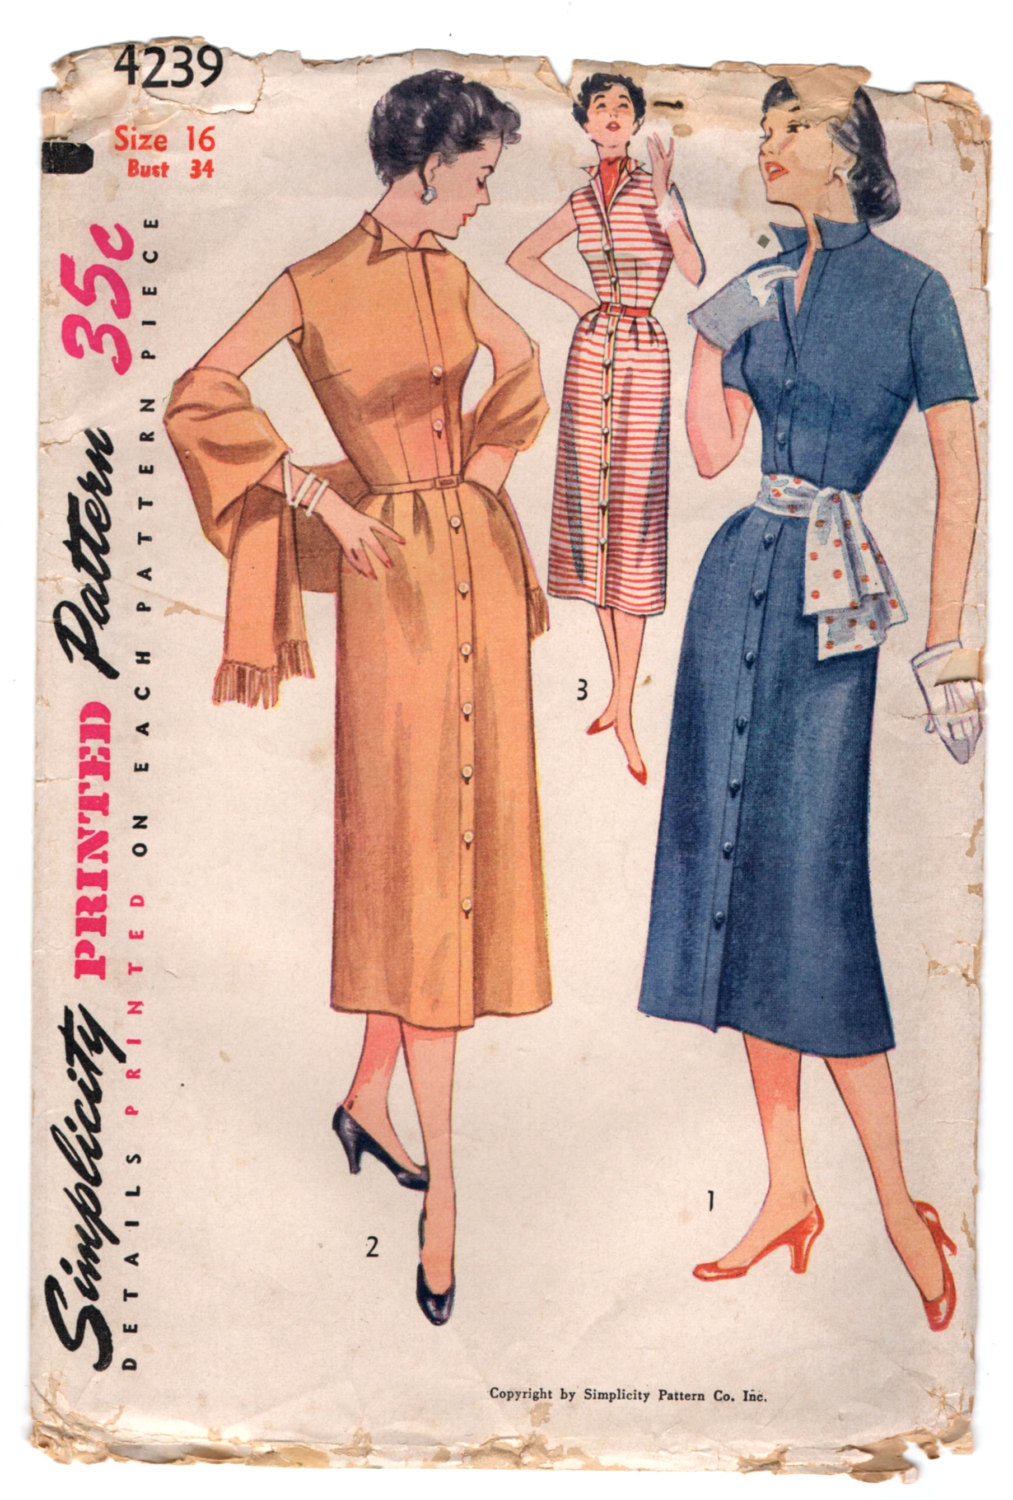 1950's Simplicity One Piece Dress and Stole pattern - Bust 34